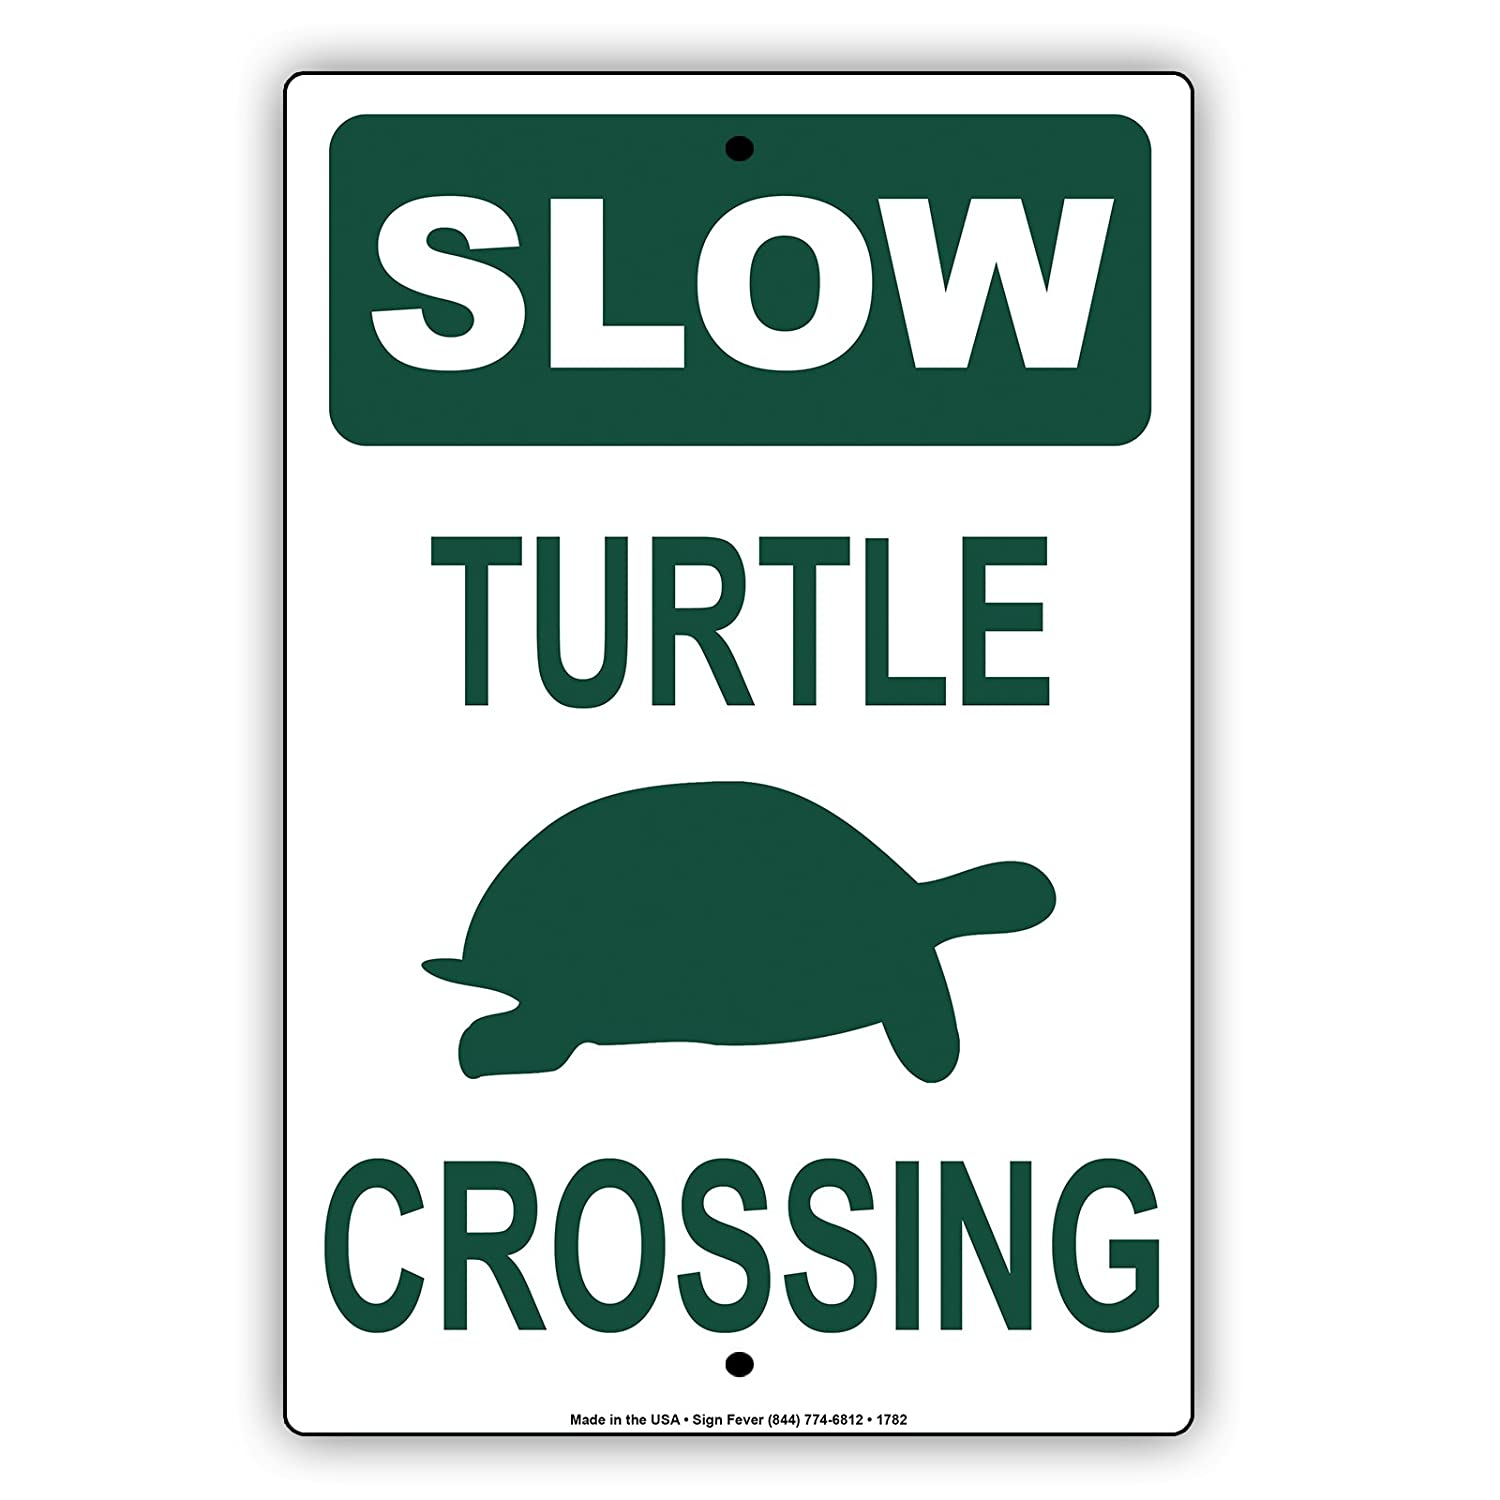 Slow Turtle Crossing >> Amazon Com Slow Turtle Crossing With Graphic No Speeding Hilarious